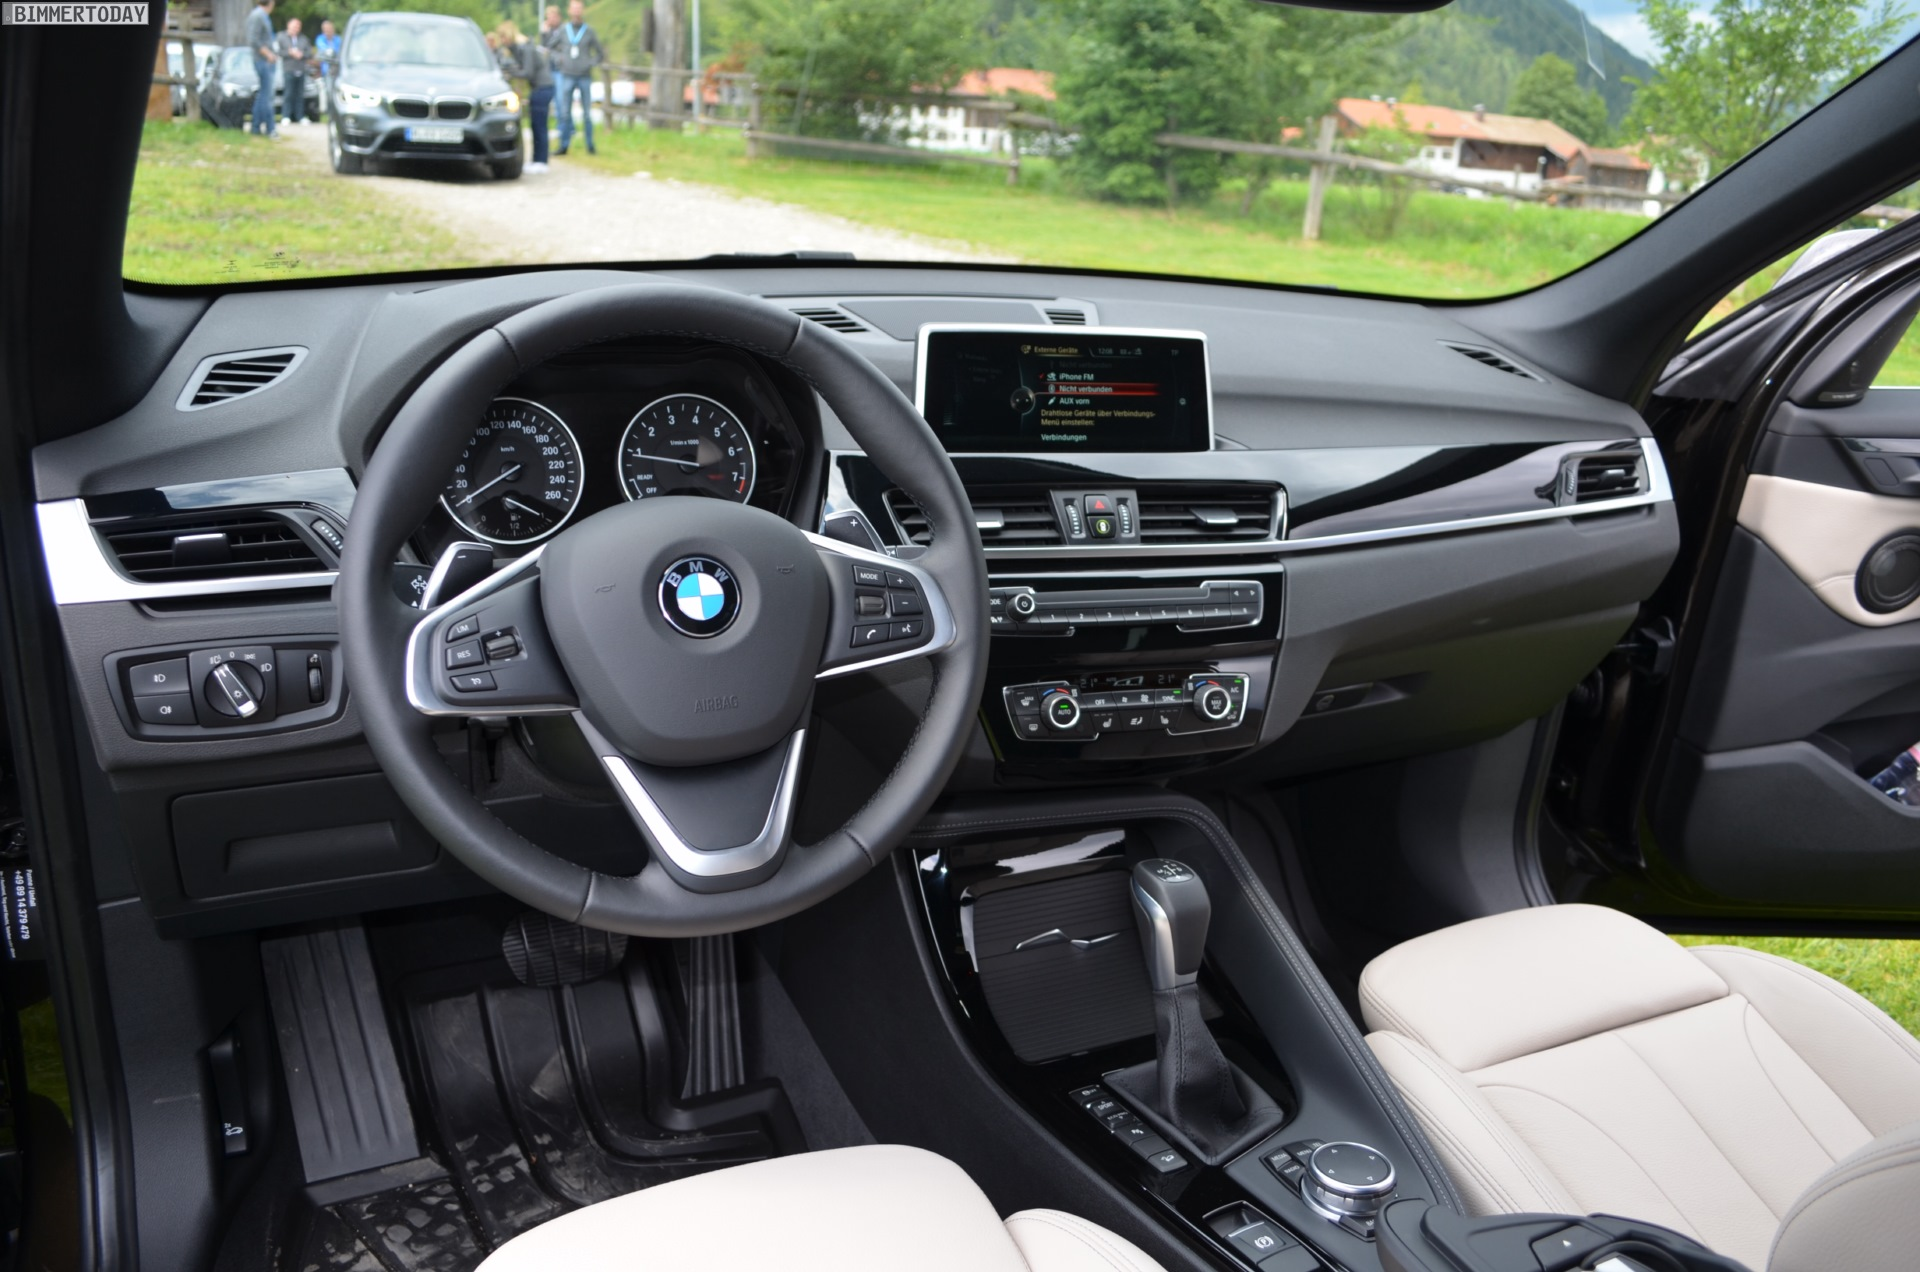 Interieur X1 2014 2016 Bmw 2015 X1 Interior Miifotos